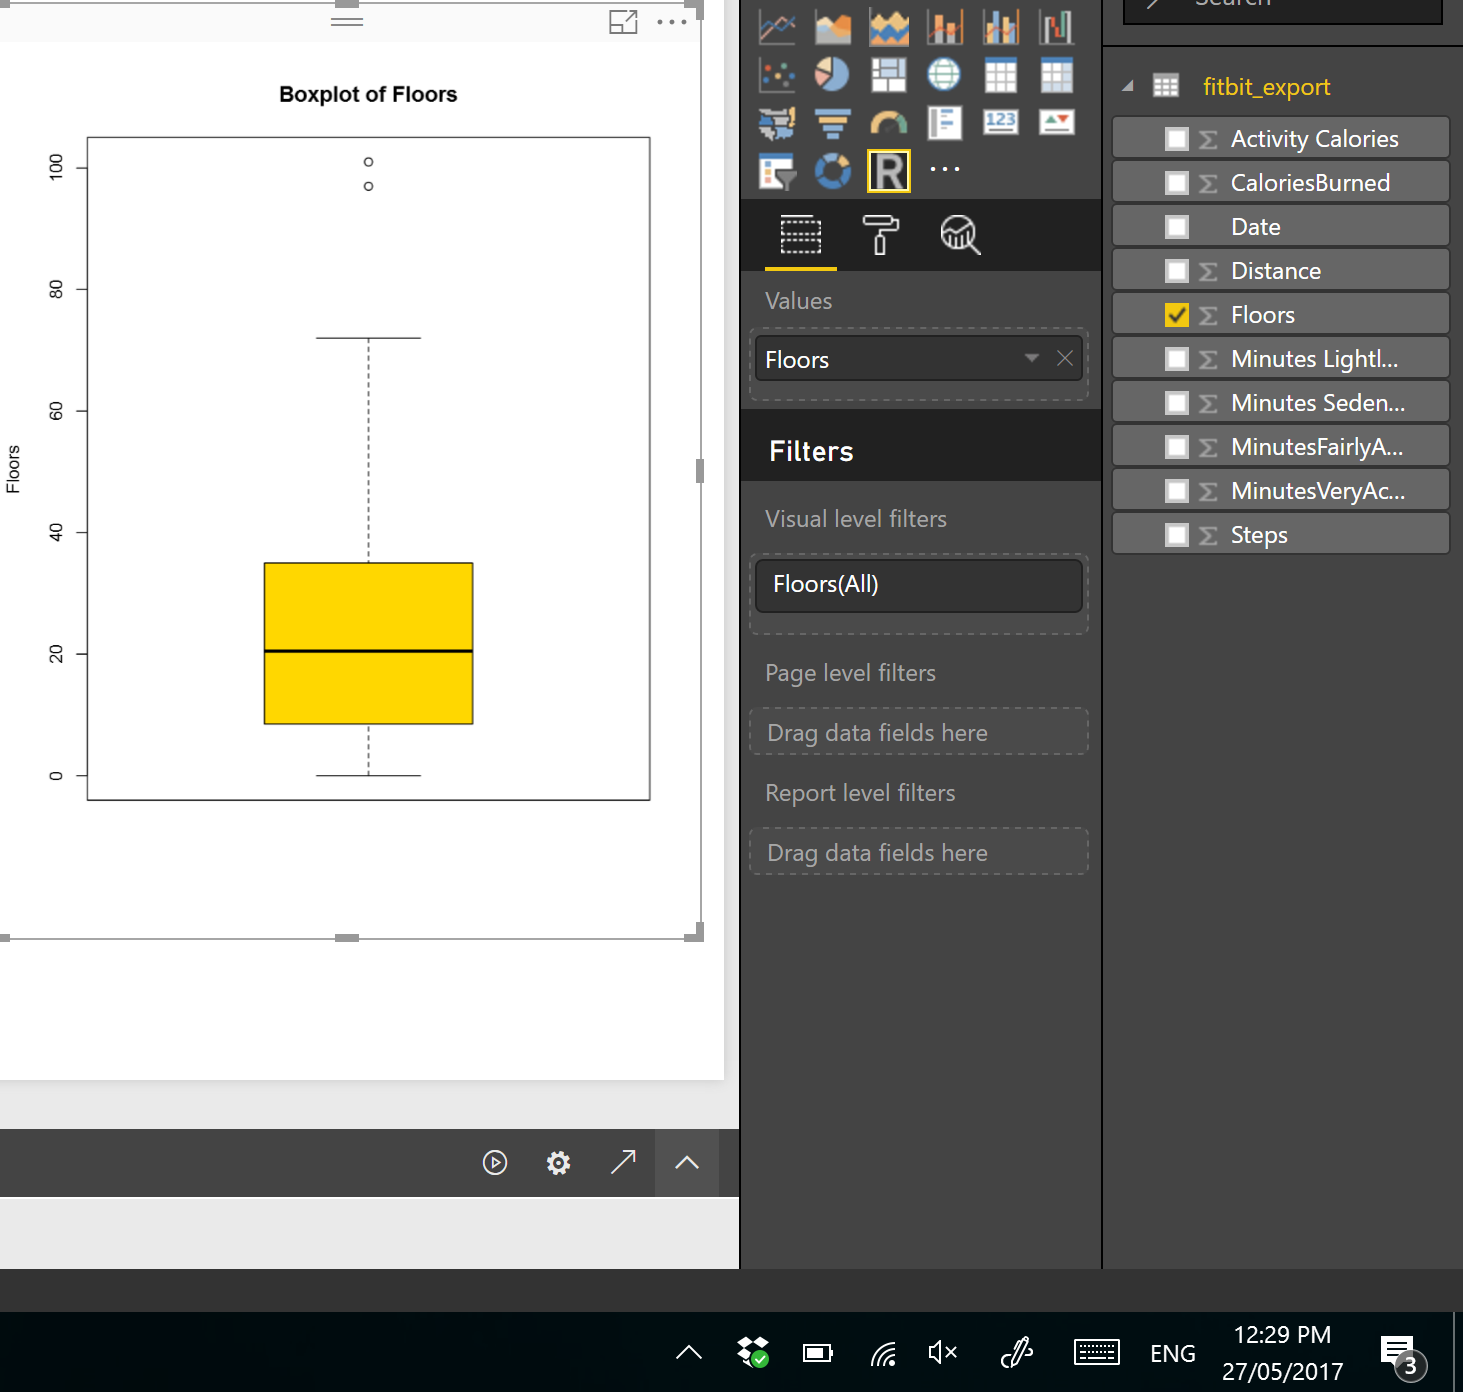 Visualizing numeric variables in Power BI – boxplots -Part 1 | RADACAD